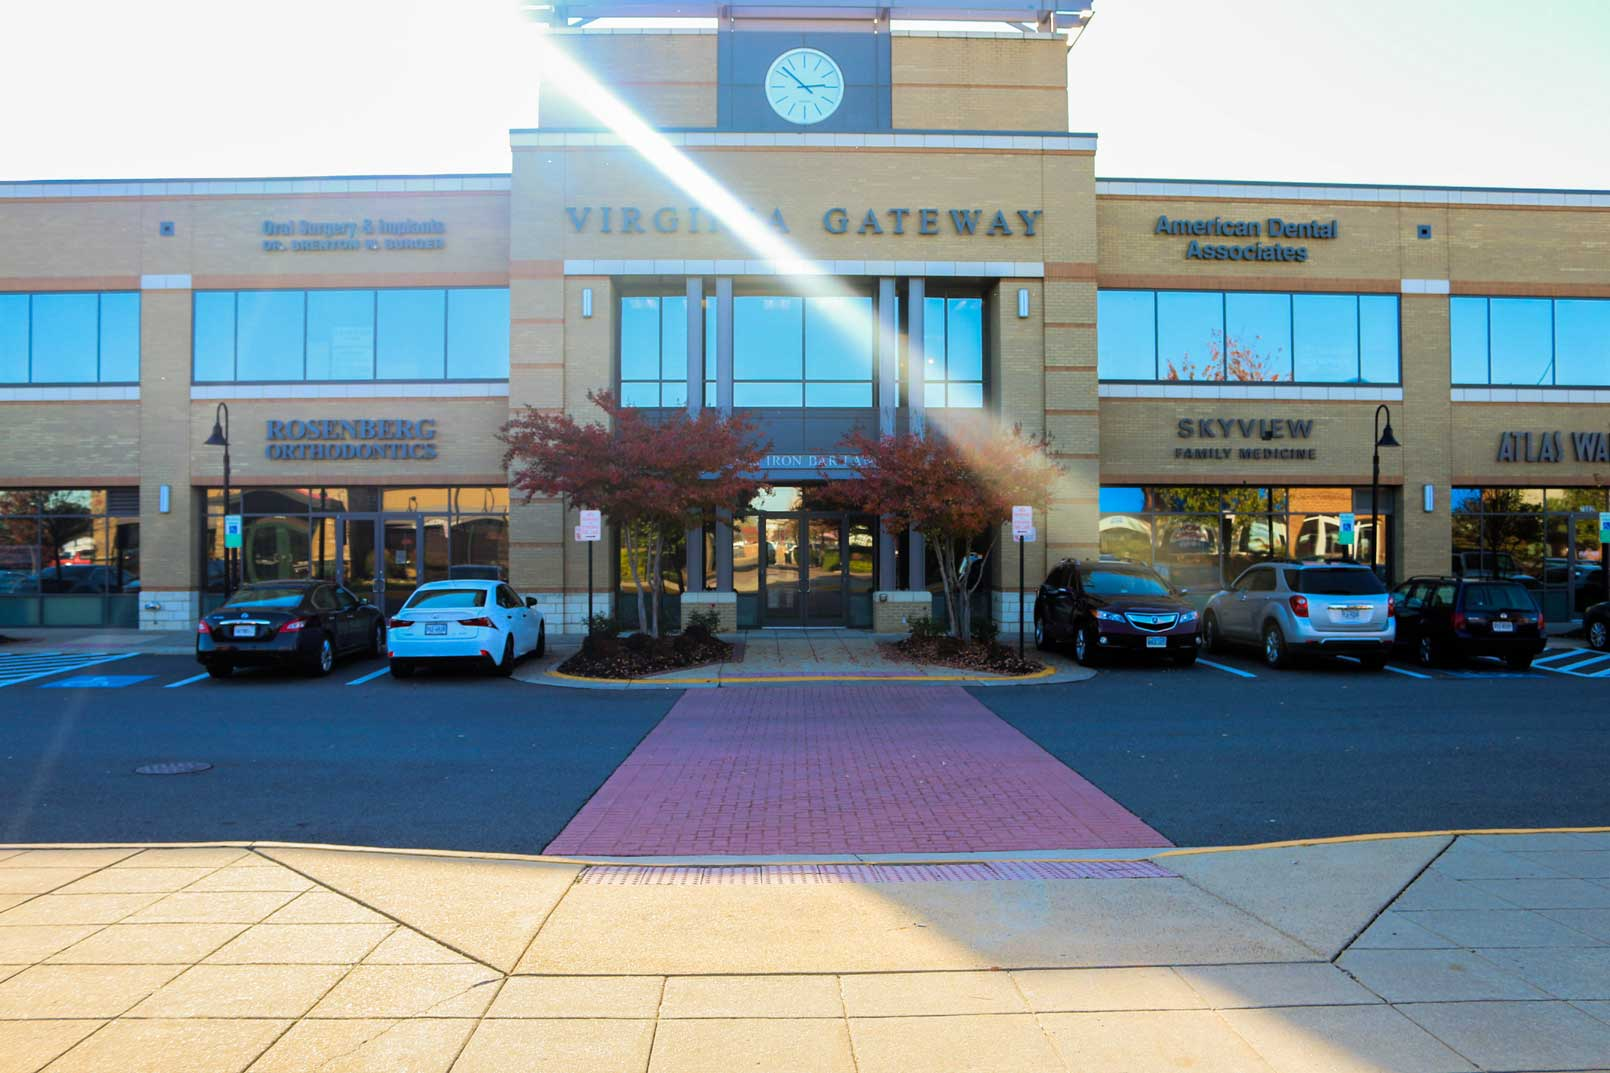 Virginia Gateway in Gainesville, VA